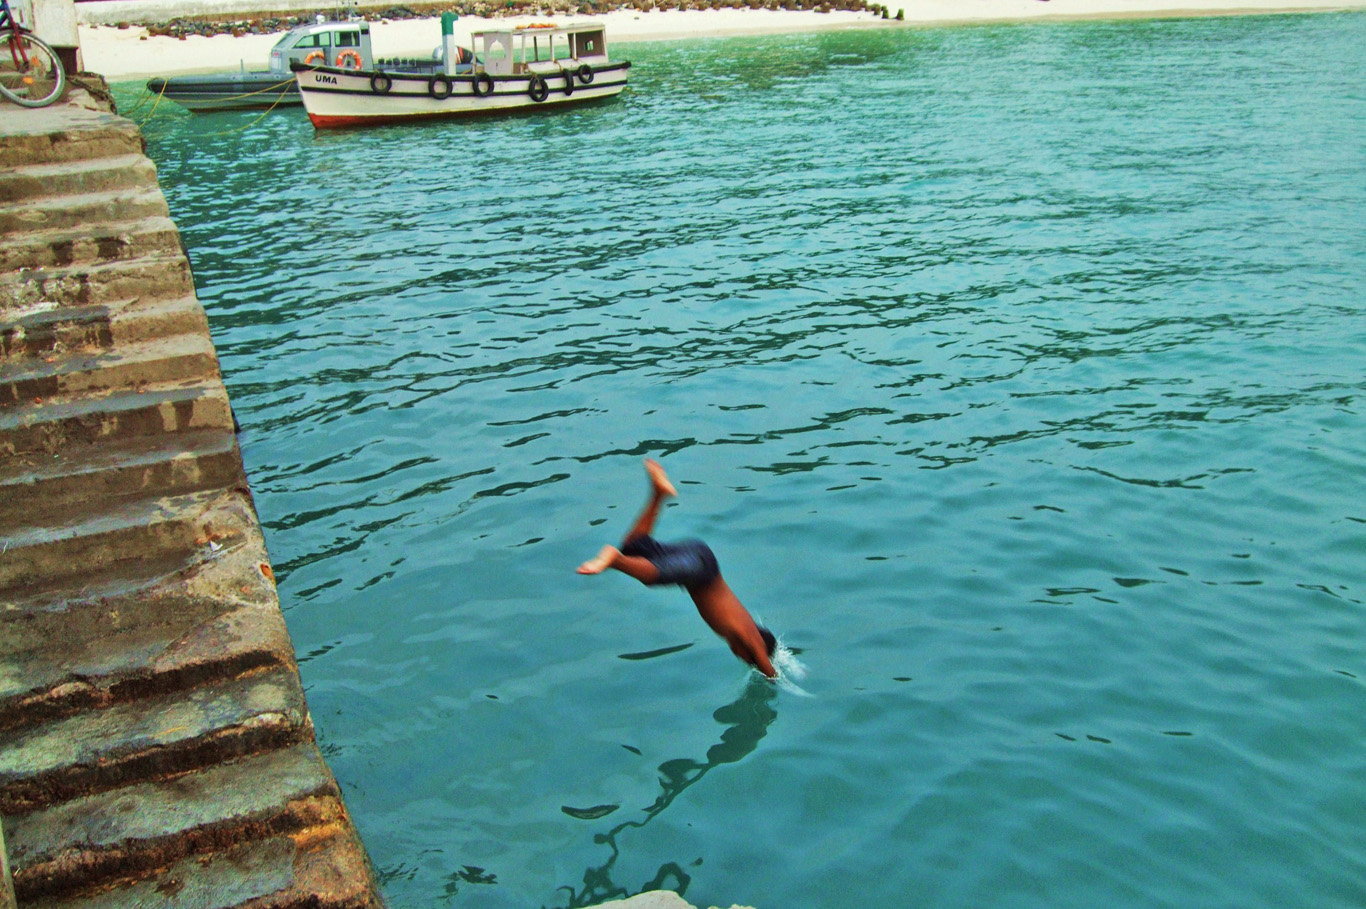 Local boy jumping into the sea